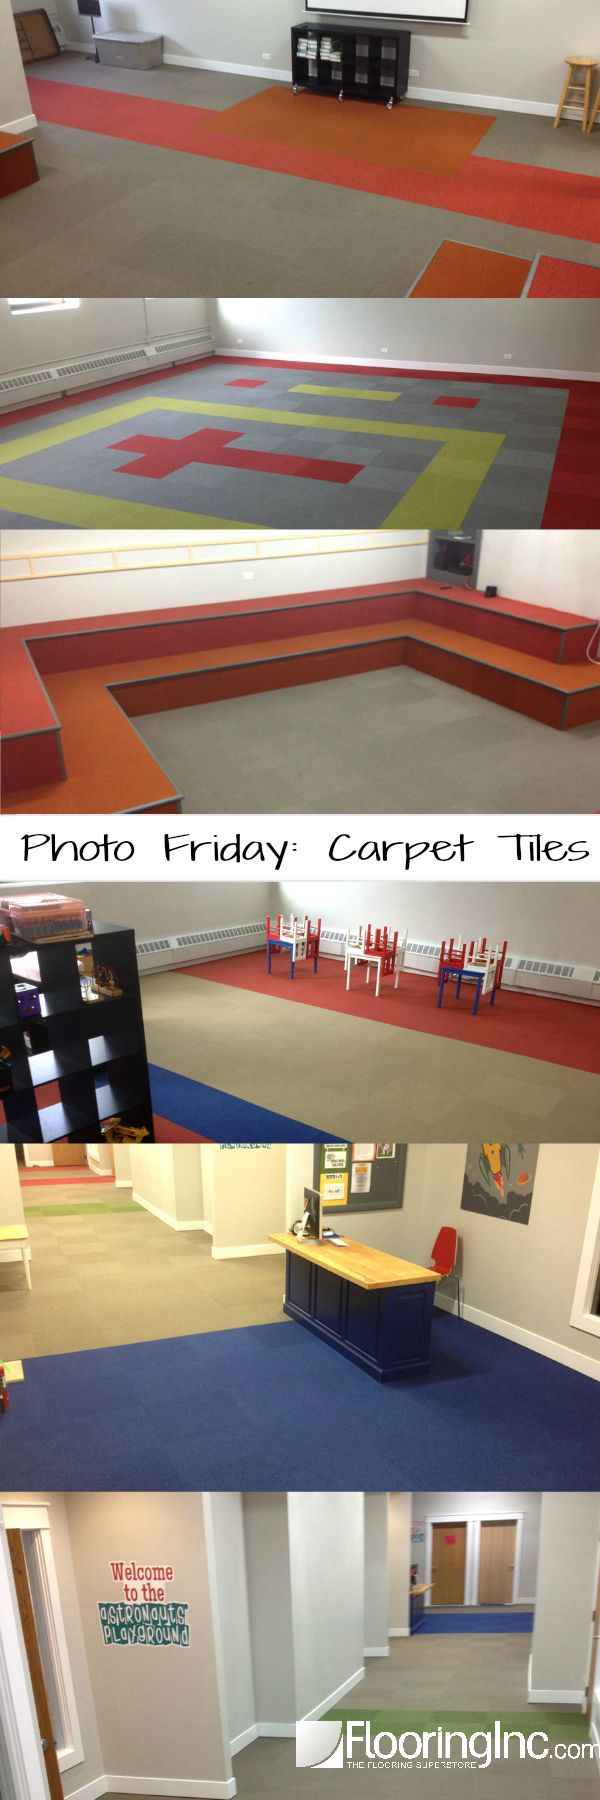 Harley color carpet tiles - Photo Friday Carpet Tilesevery Day